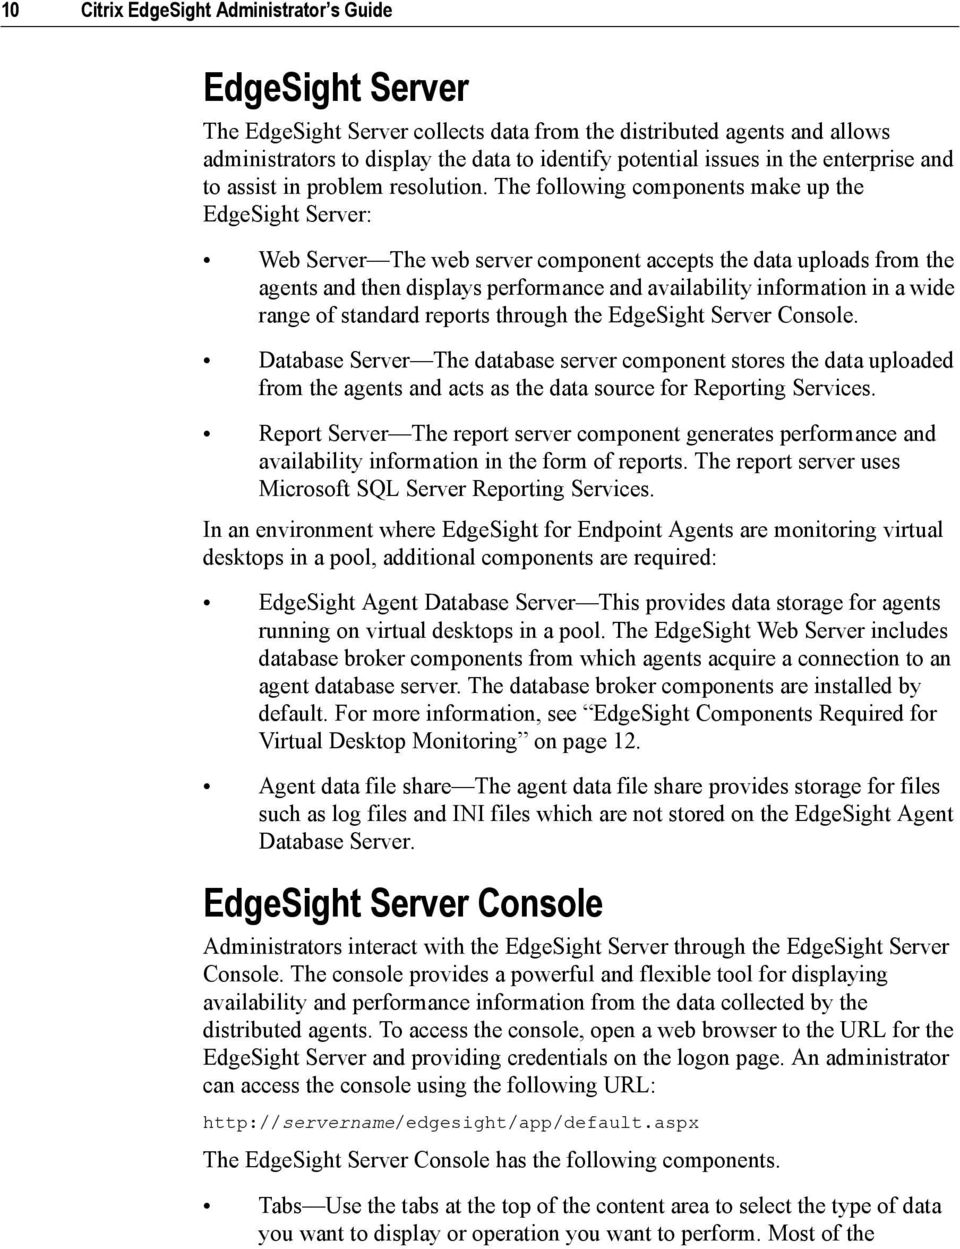 The following components make up the EdgeSight Server: Web Server The web server component accepts the data uploads from the agents and then displays performance and availability information in a